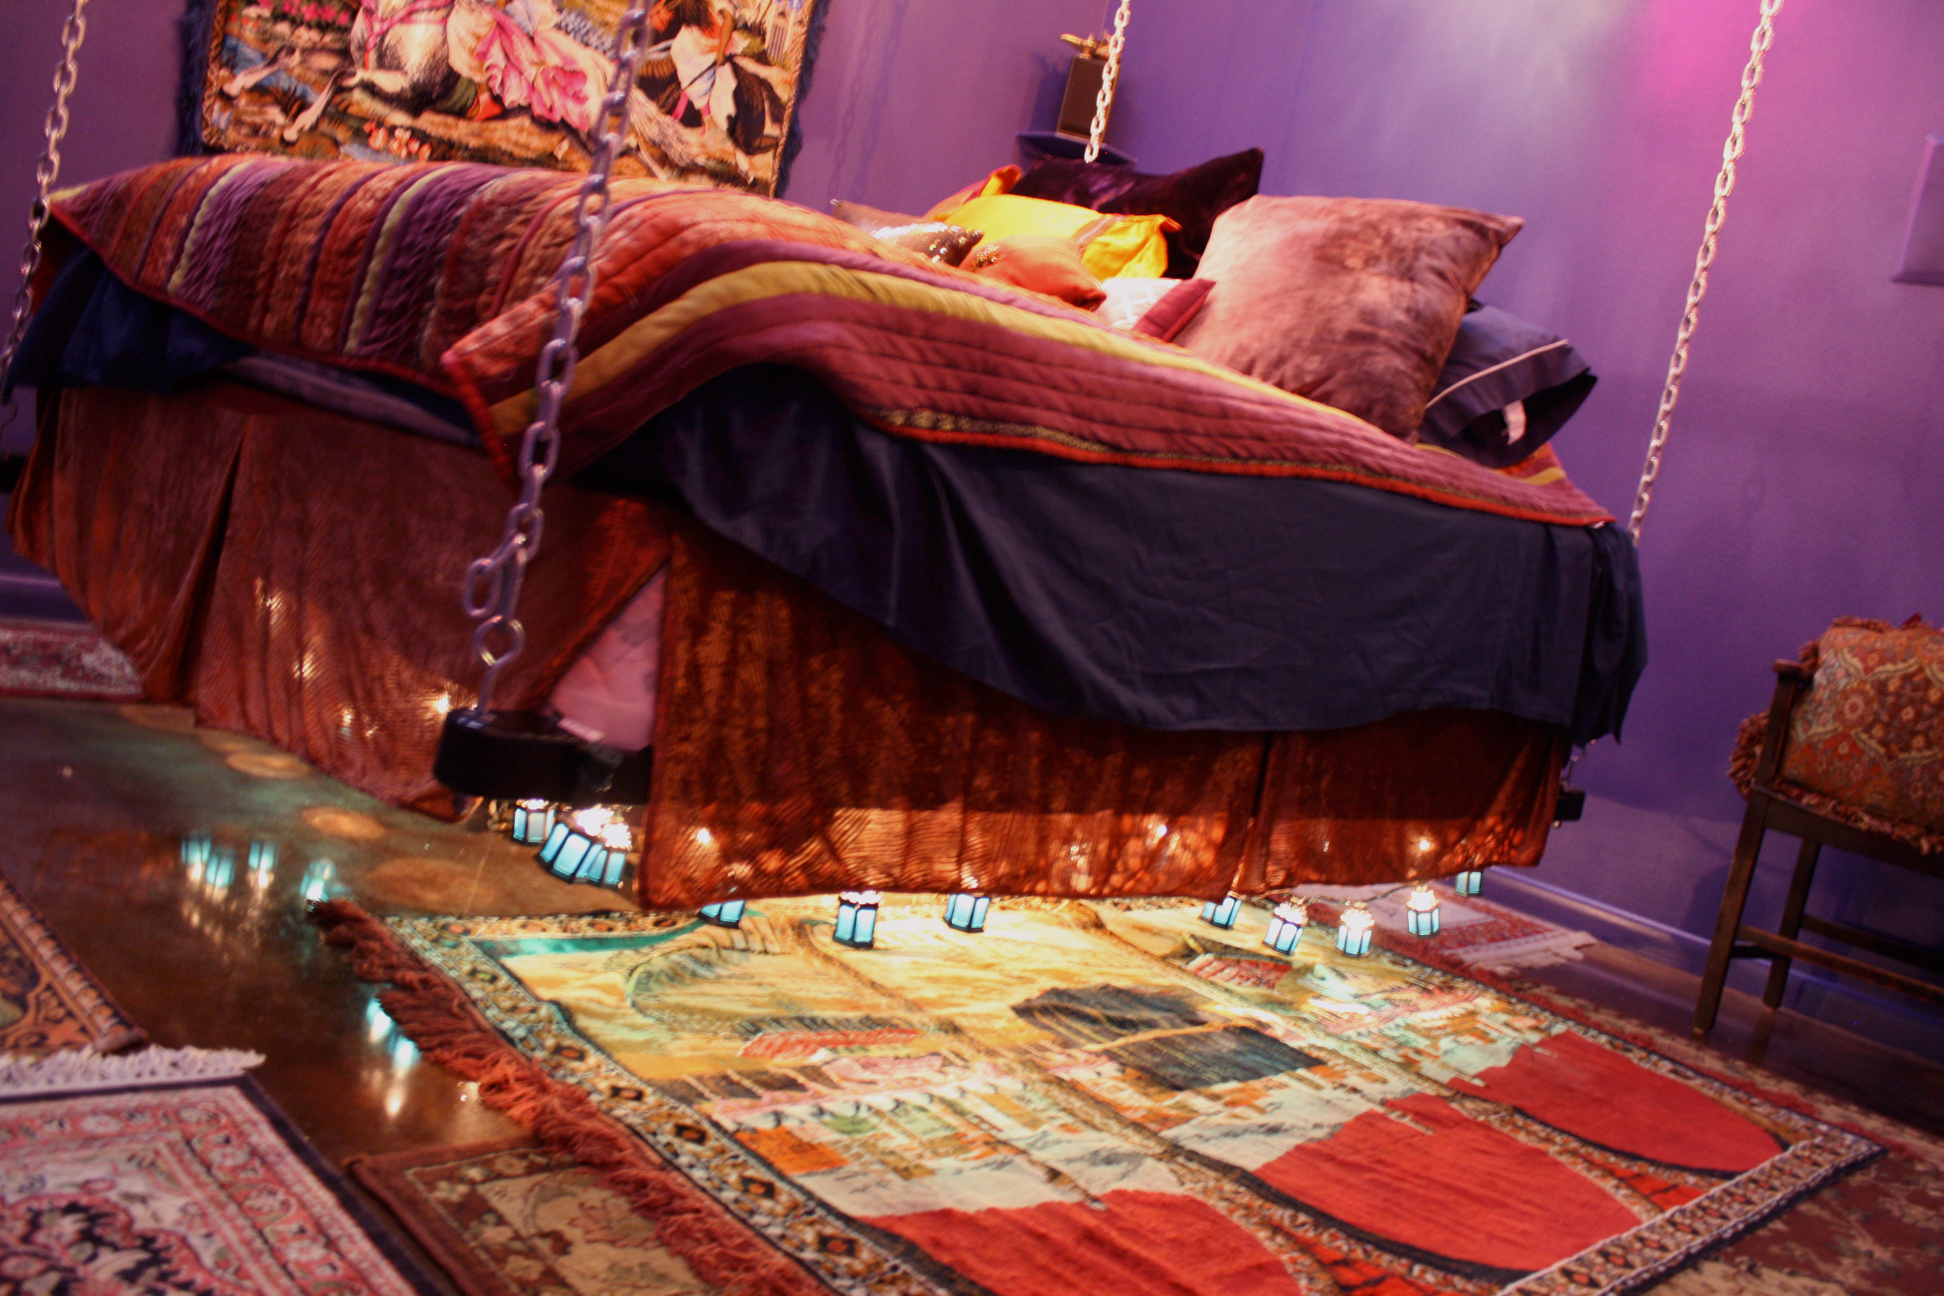 The swinging bed feels like a flying carpet.